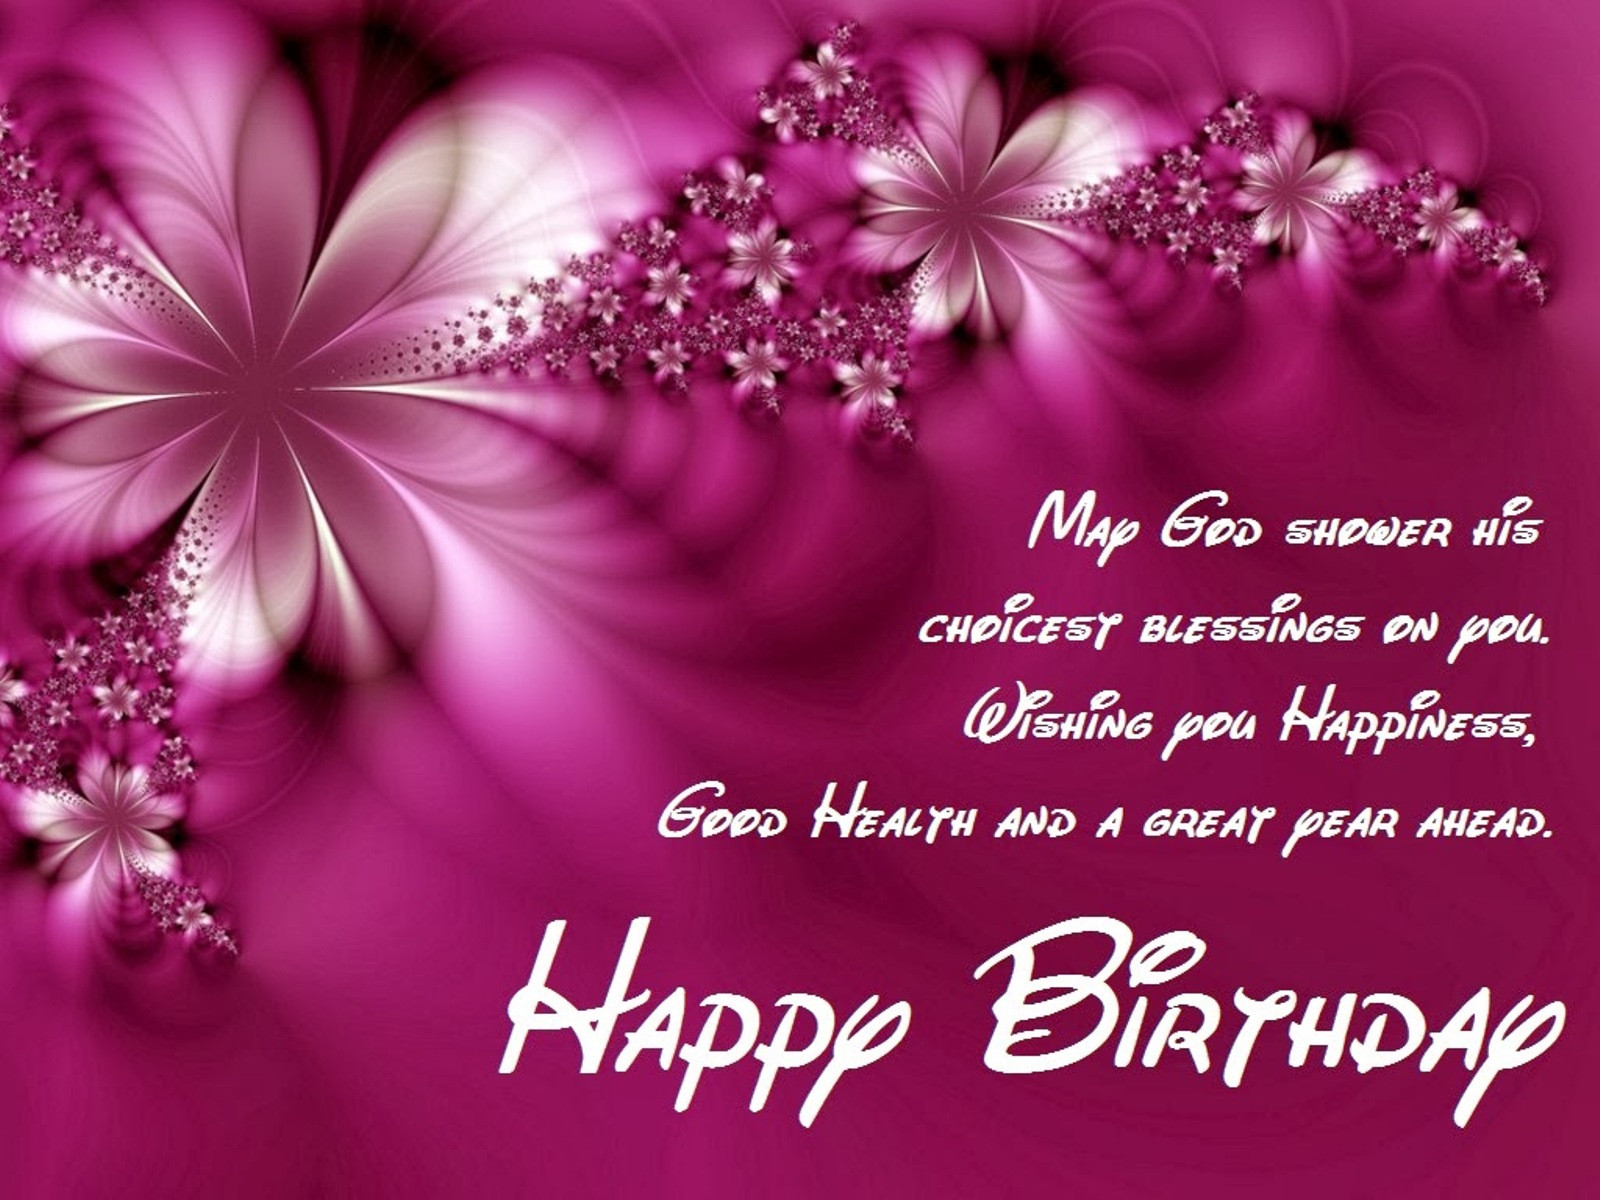 Best ideas about Happy Birthday Image Quotes . Save or Pin Happy Birthday Quotes QuotesGram Now.